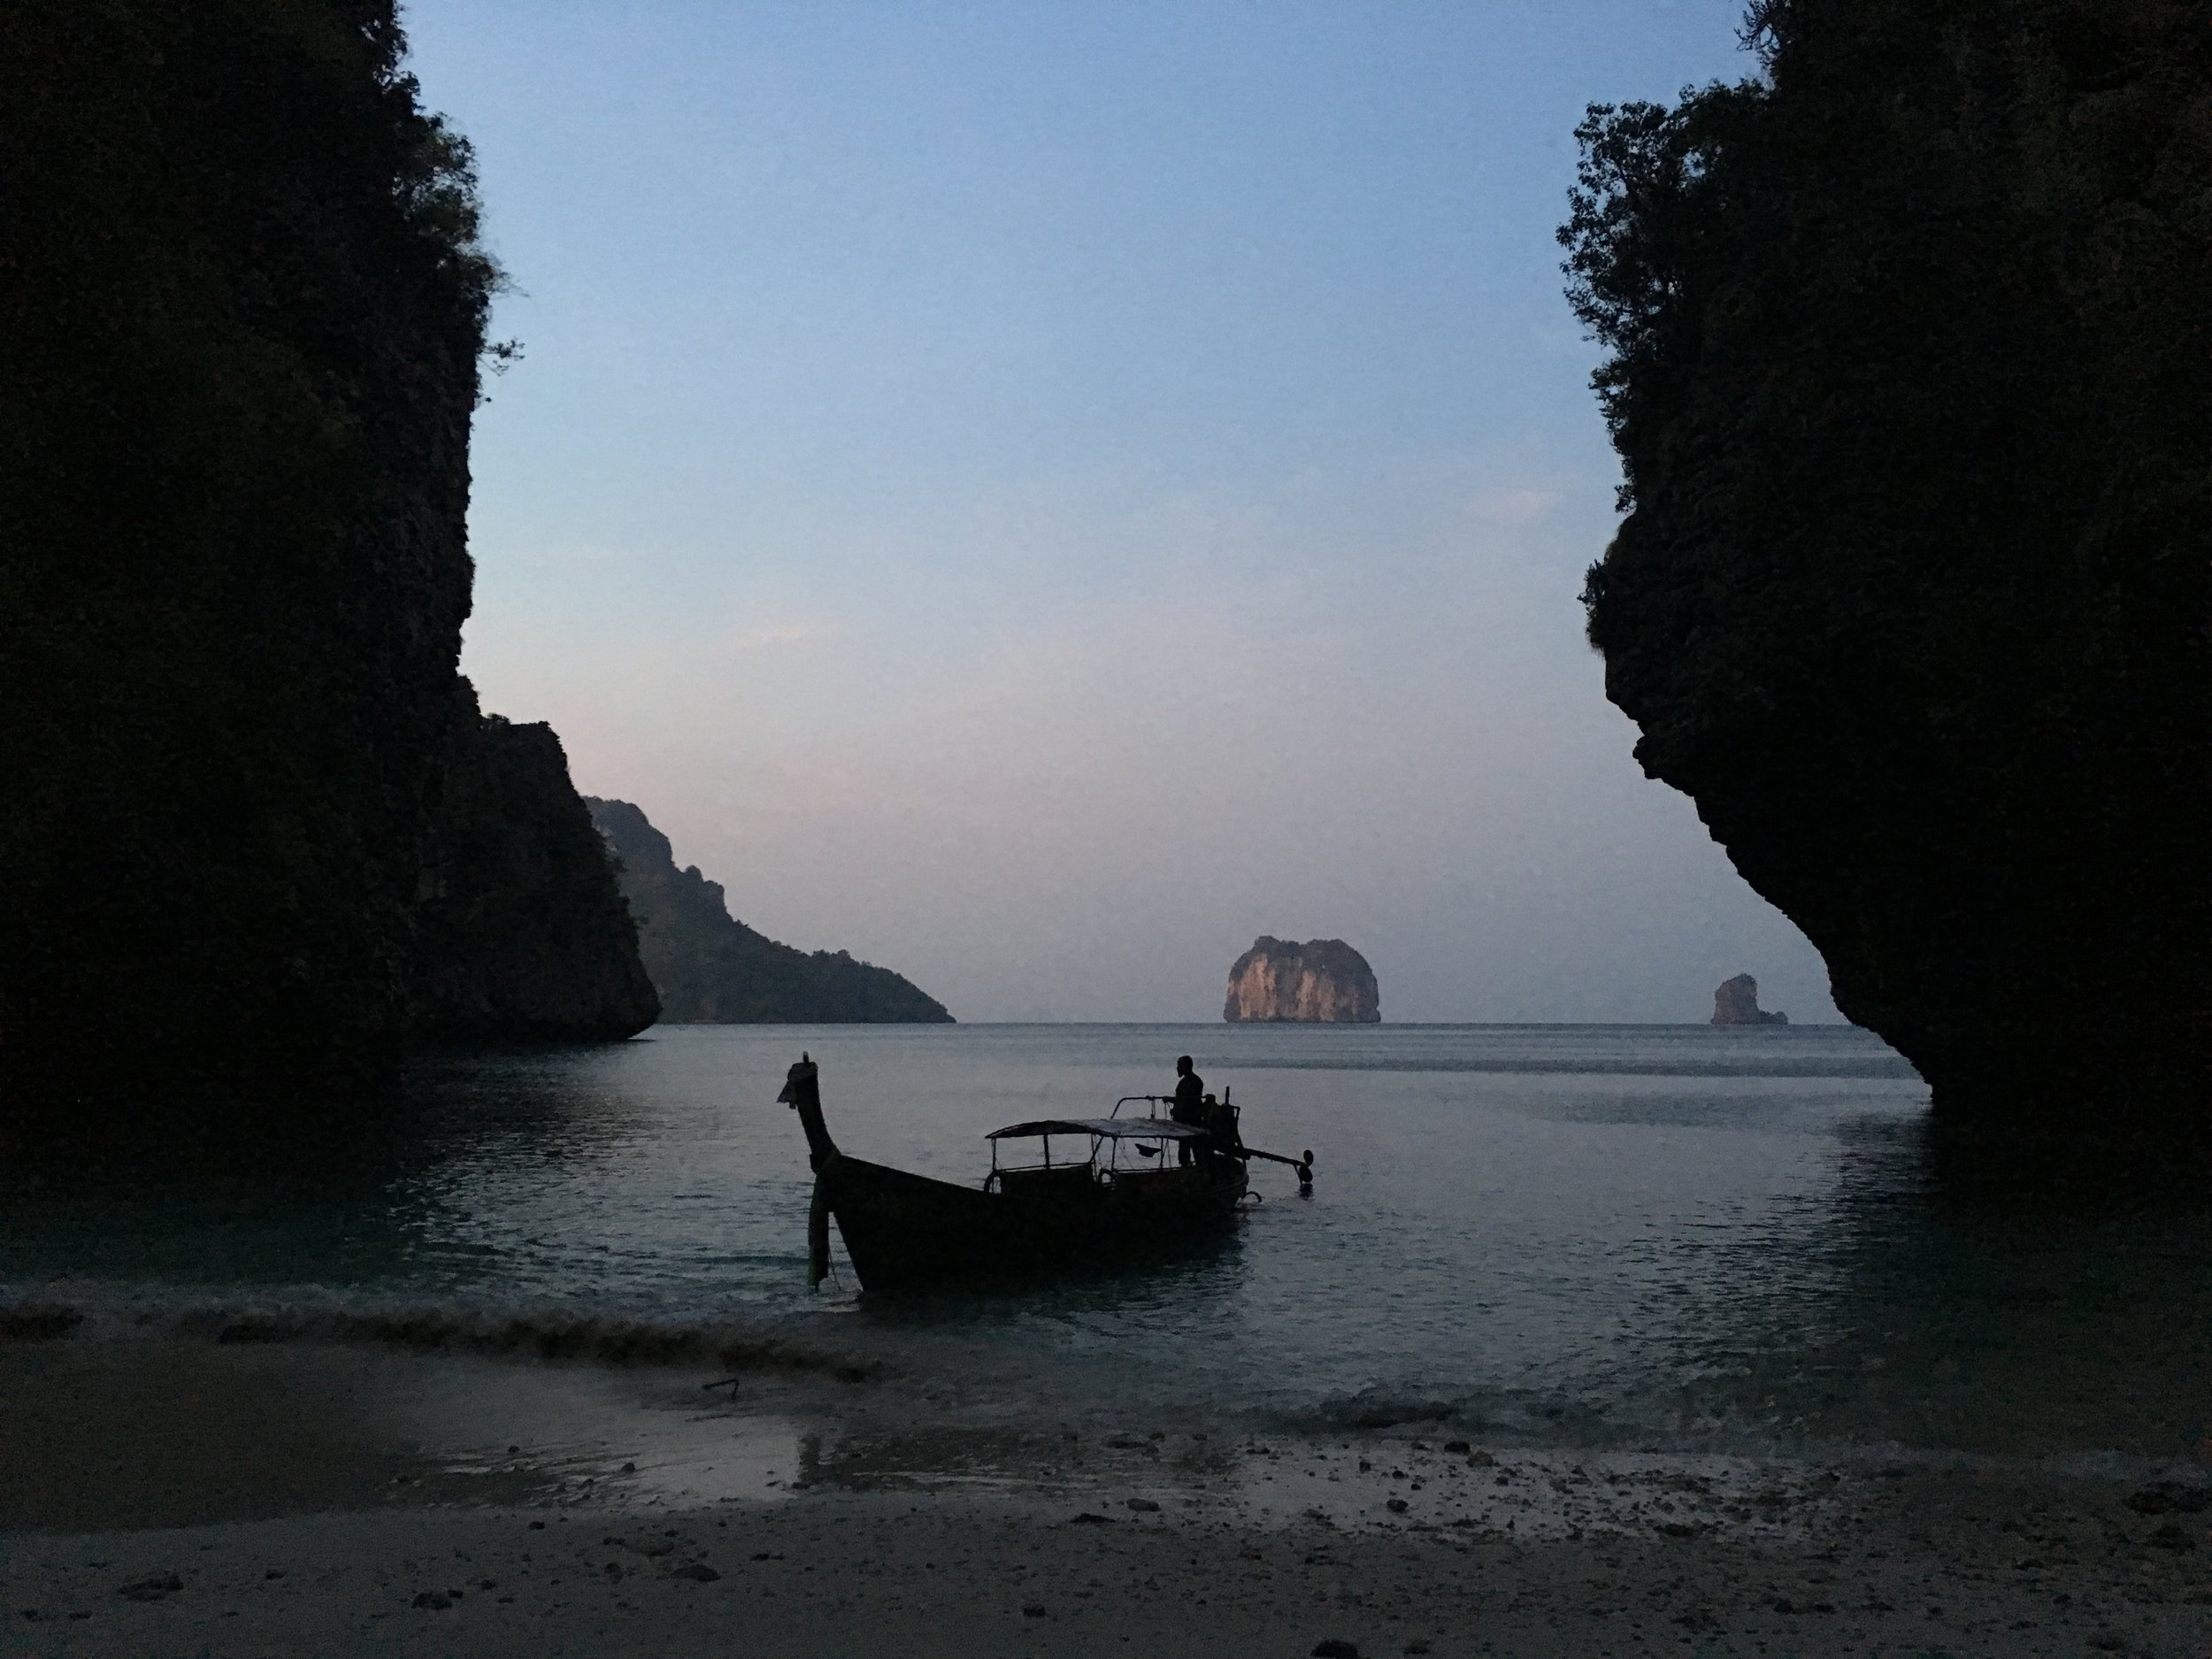 Dawn on the uninhabited Poda Island where a group of us spent the night before saying goodbye to Tonsai